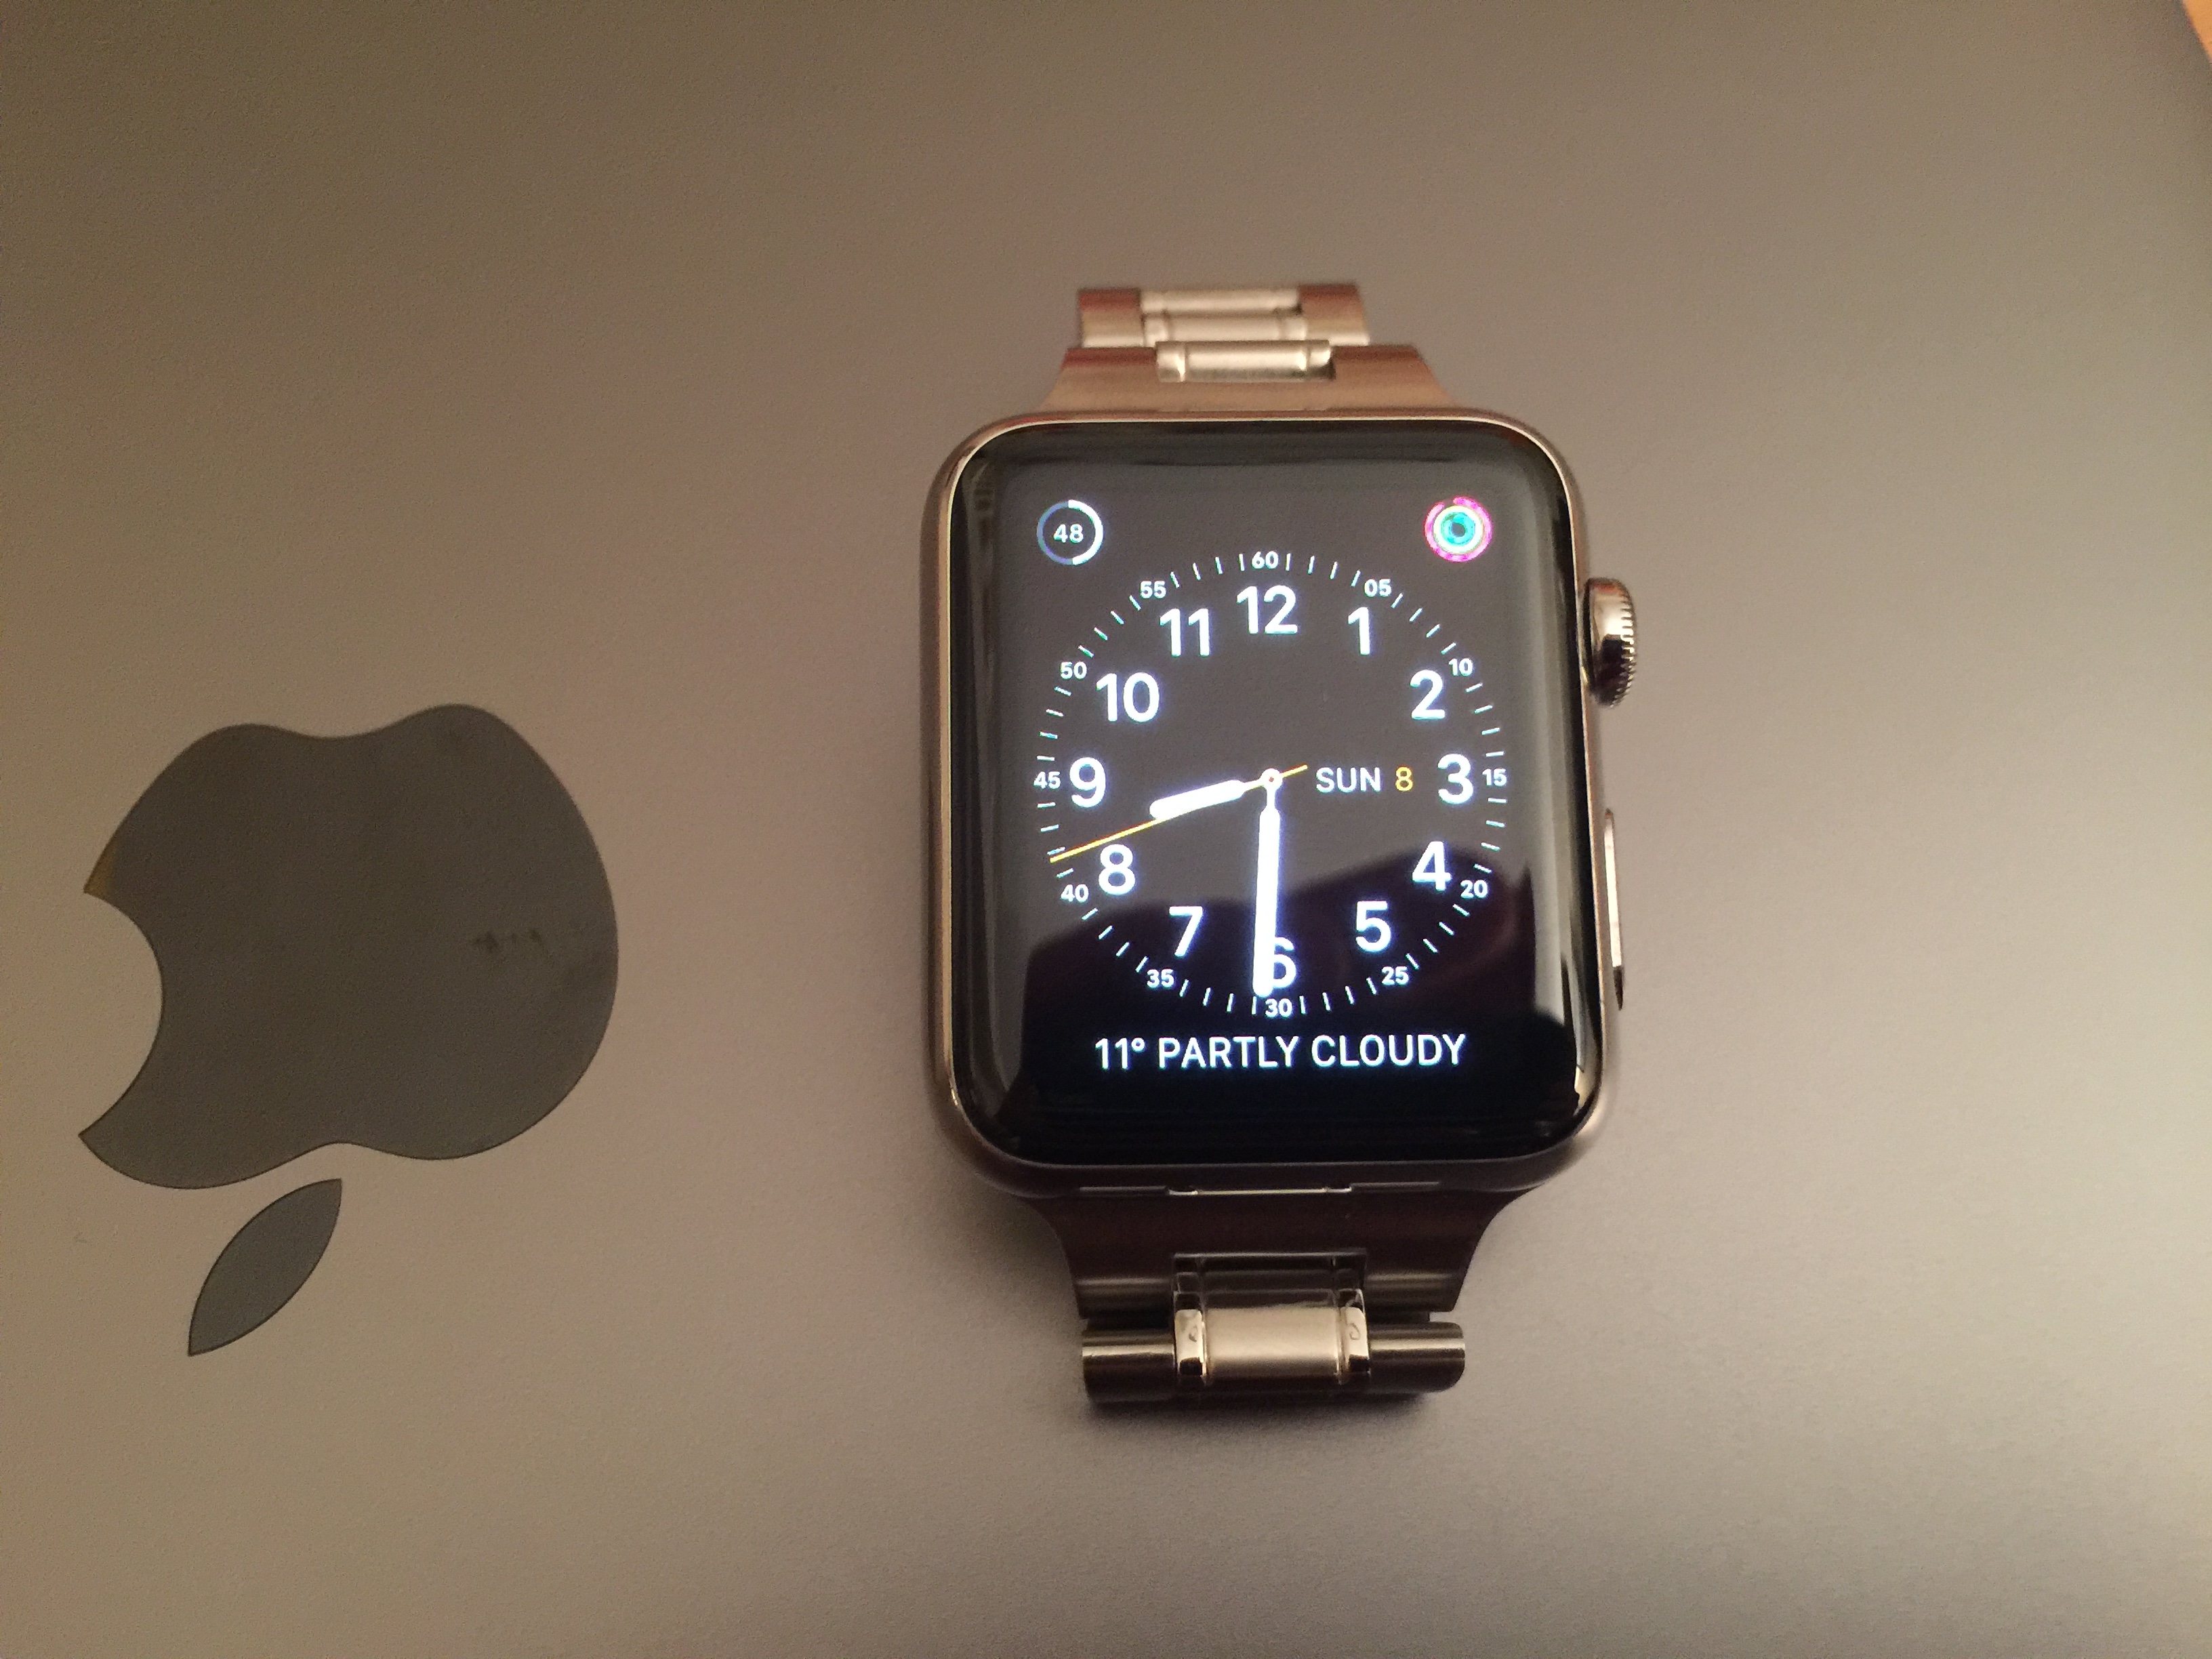 Review: HyperLink is a great, inexpensive steel bracelet for the Apple Watch